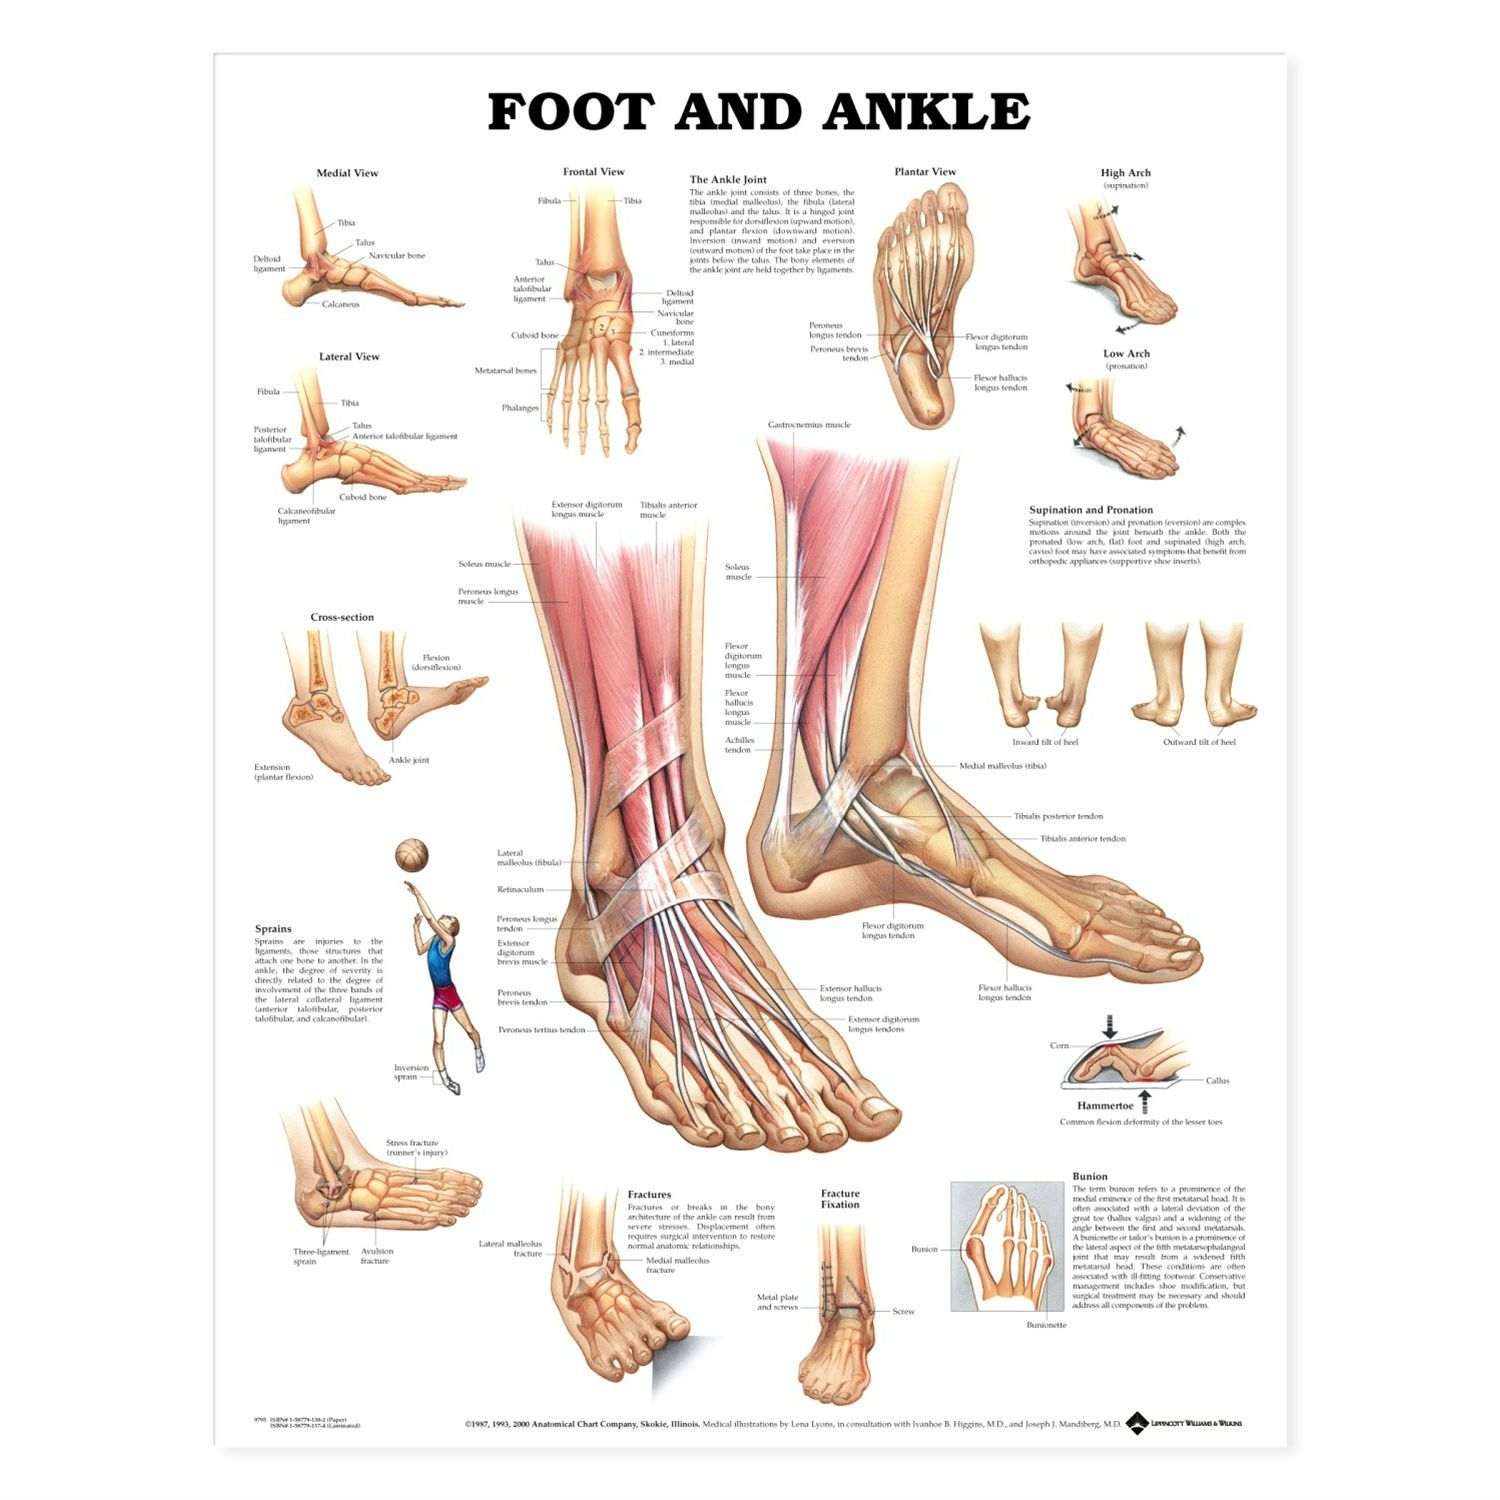 Foot and Ankle | OT | Pinterest